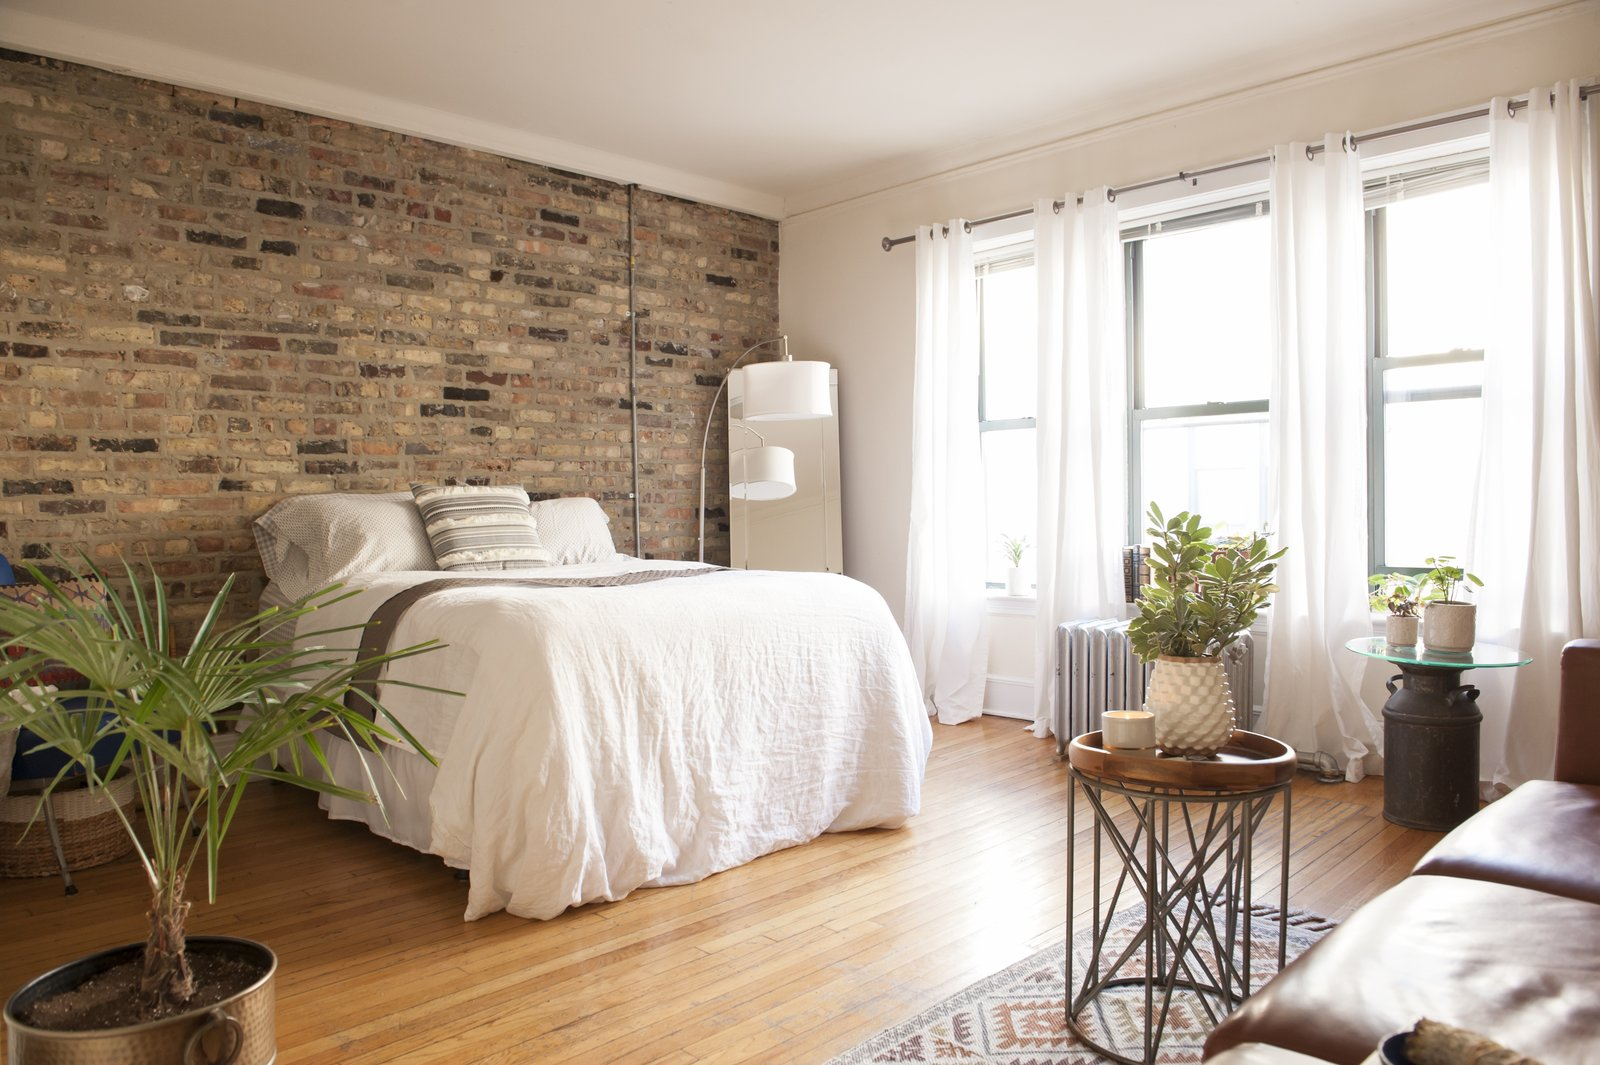 Fabulous Small Hip Chicago Studio Modern Home In Chicago Illinois Home Interior And Landscaping Ologienasavecom